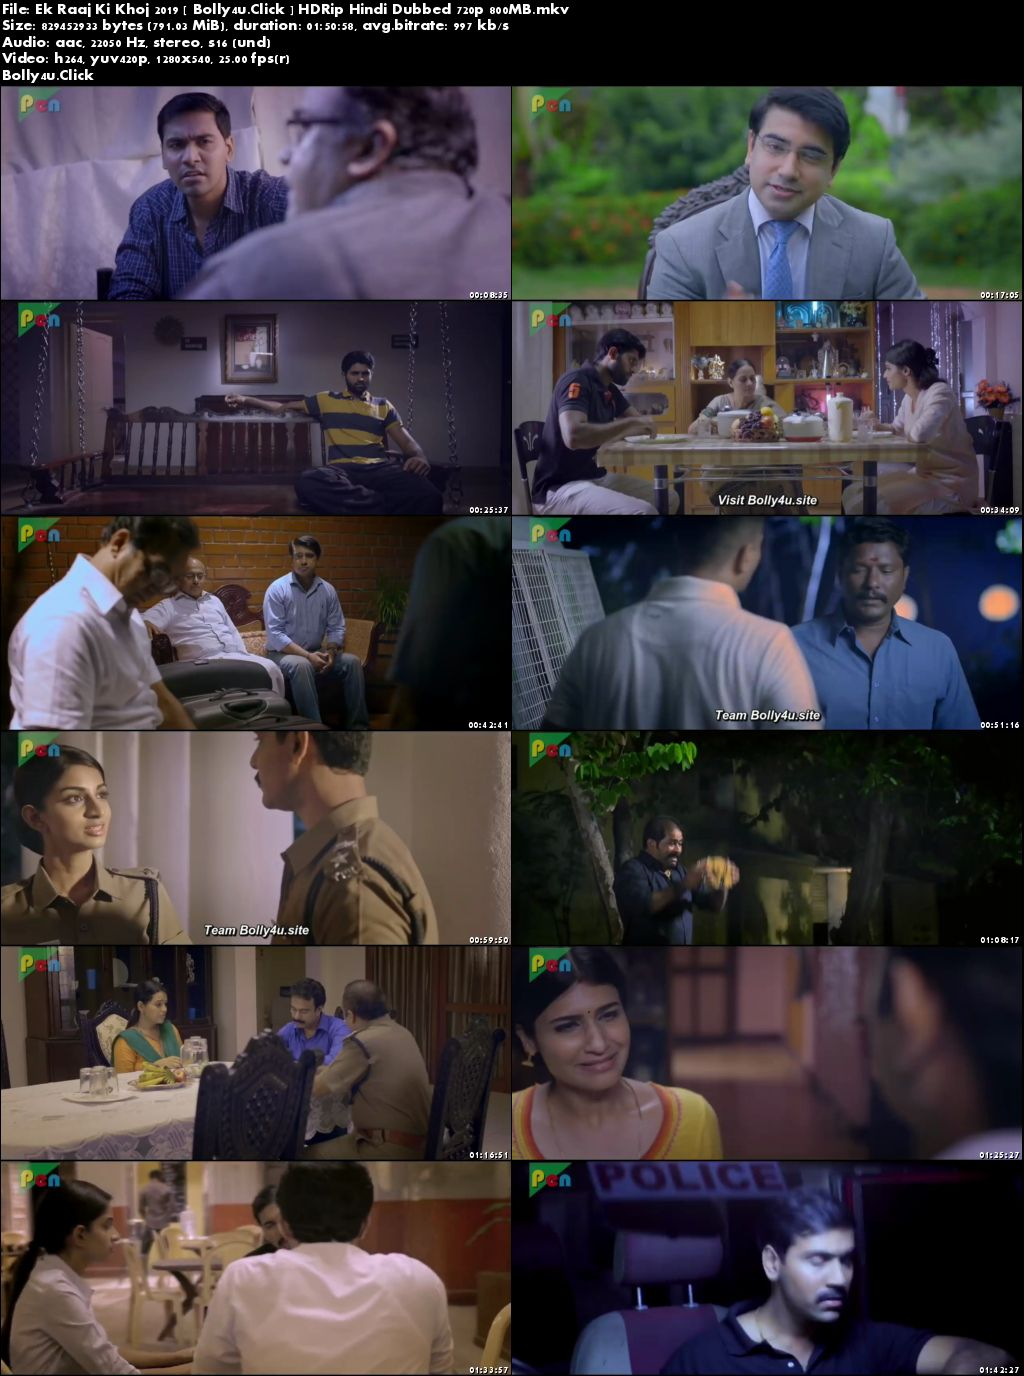 Ek Raaj Ki Khoj 2019 HDRip 300MB Hindi Dubbed 480p Download